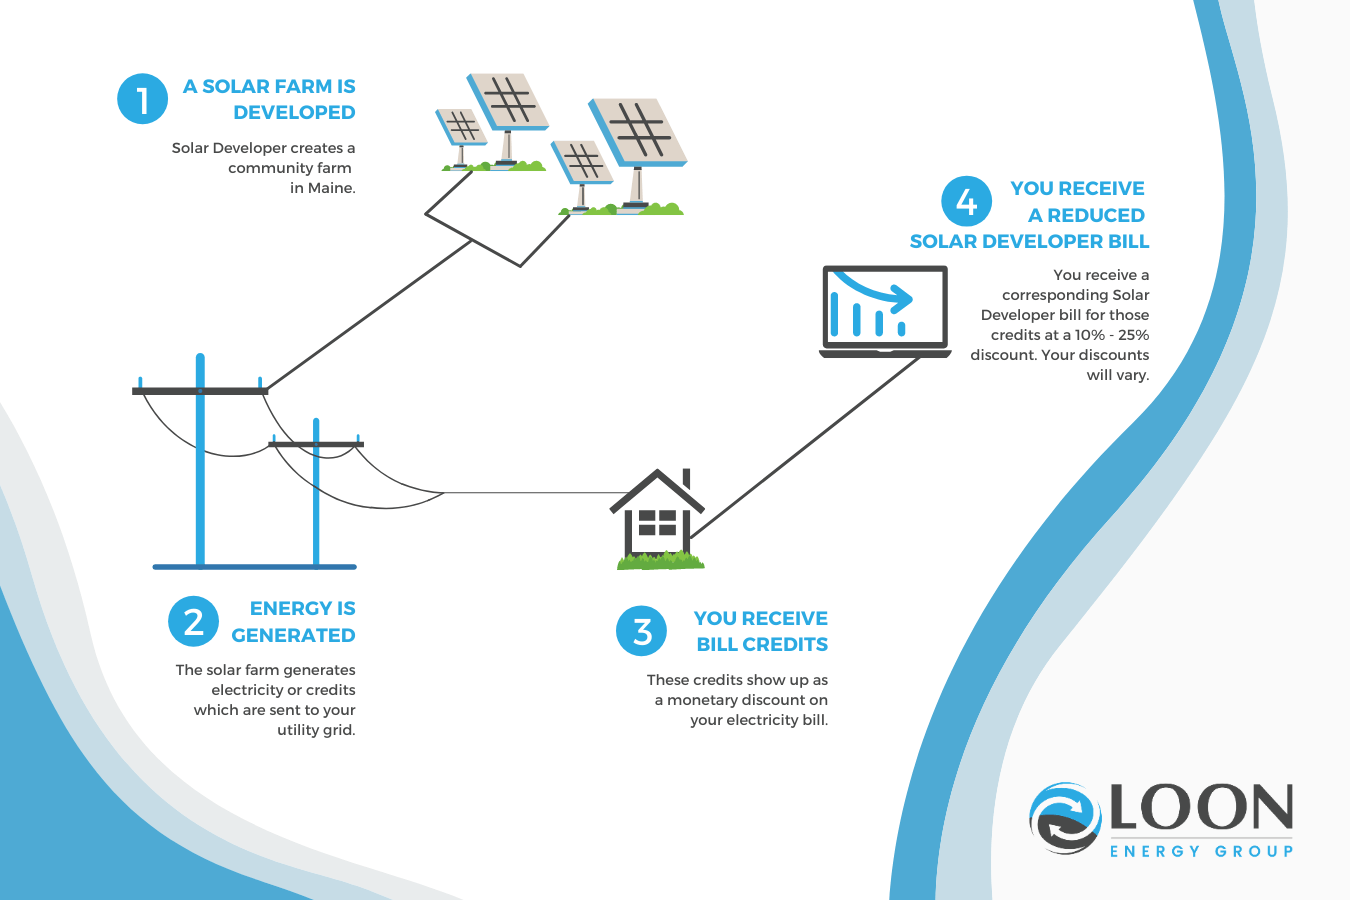 Loon Energy Group - How Your Community Solar Works